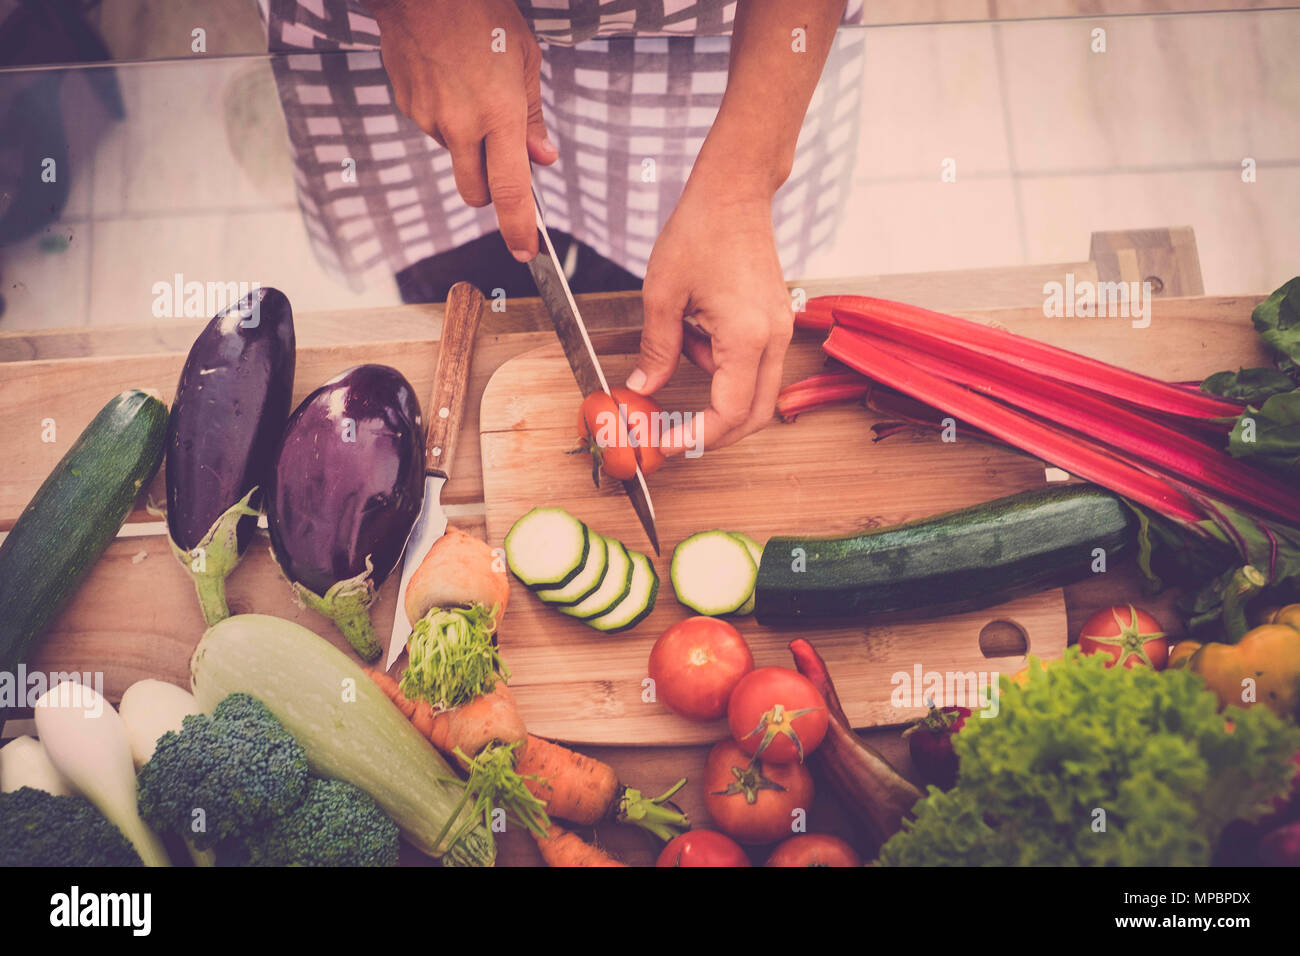 Closeup of Human hands cooking food, vegetables salad in kitchen. Preparing fresh meal in the kitchen. Healhty lifestyle concept at home eating raw in - Stock Image